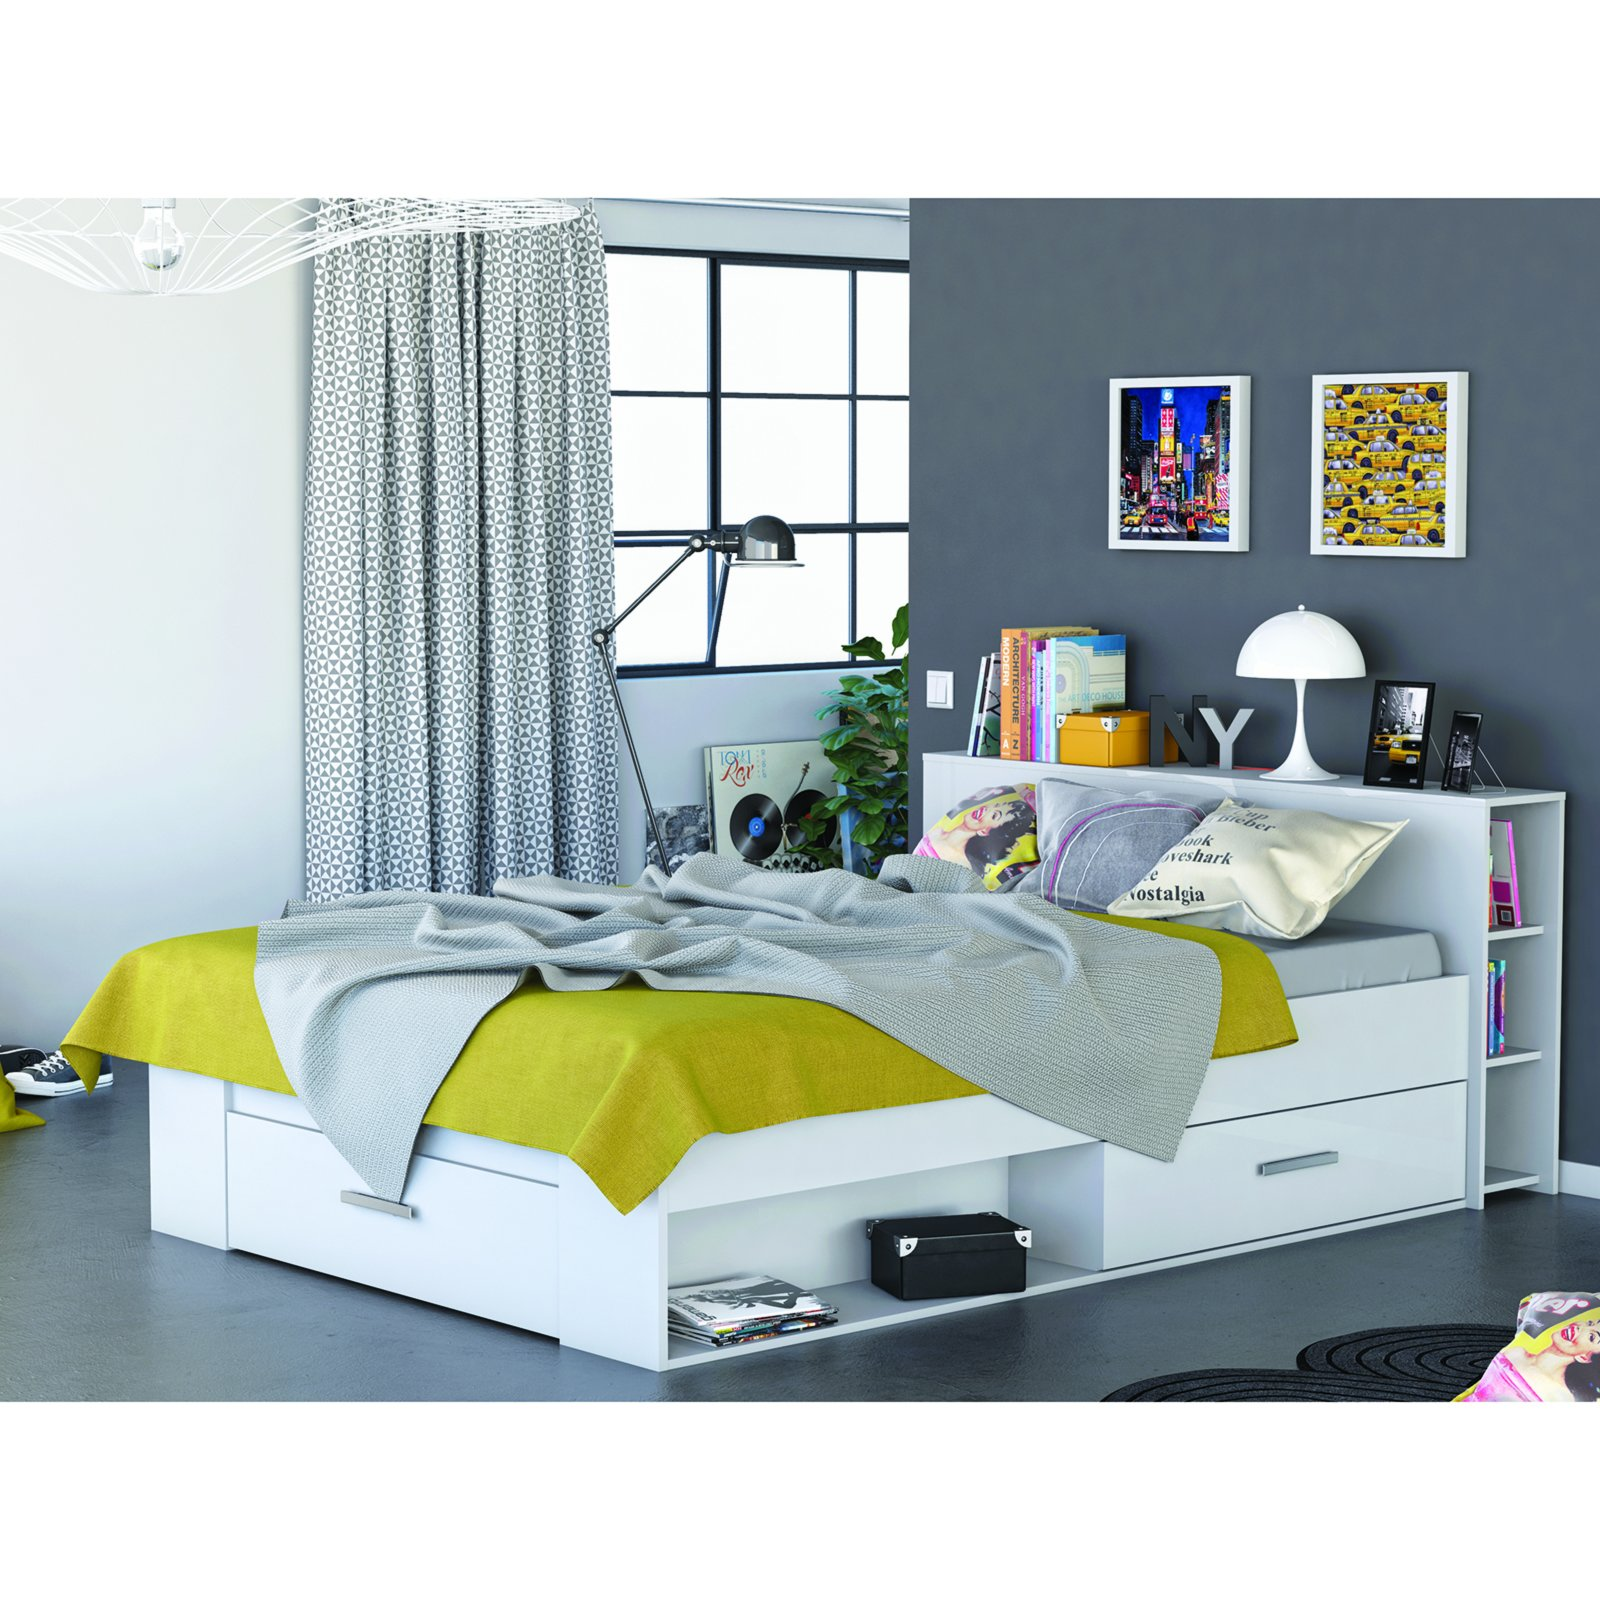 roller jugendbett funktionsbett pocket wei 140x200 cm eur 179 99 picclick de. Black Bedroom Furniture Sets. Home Design Ideas